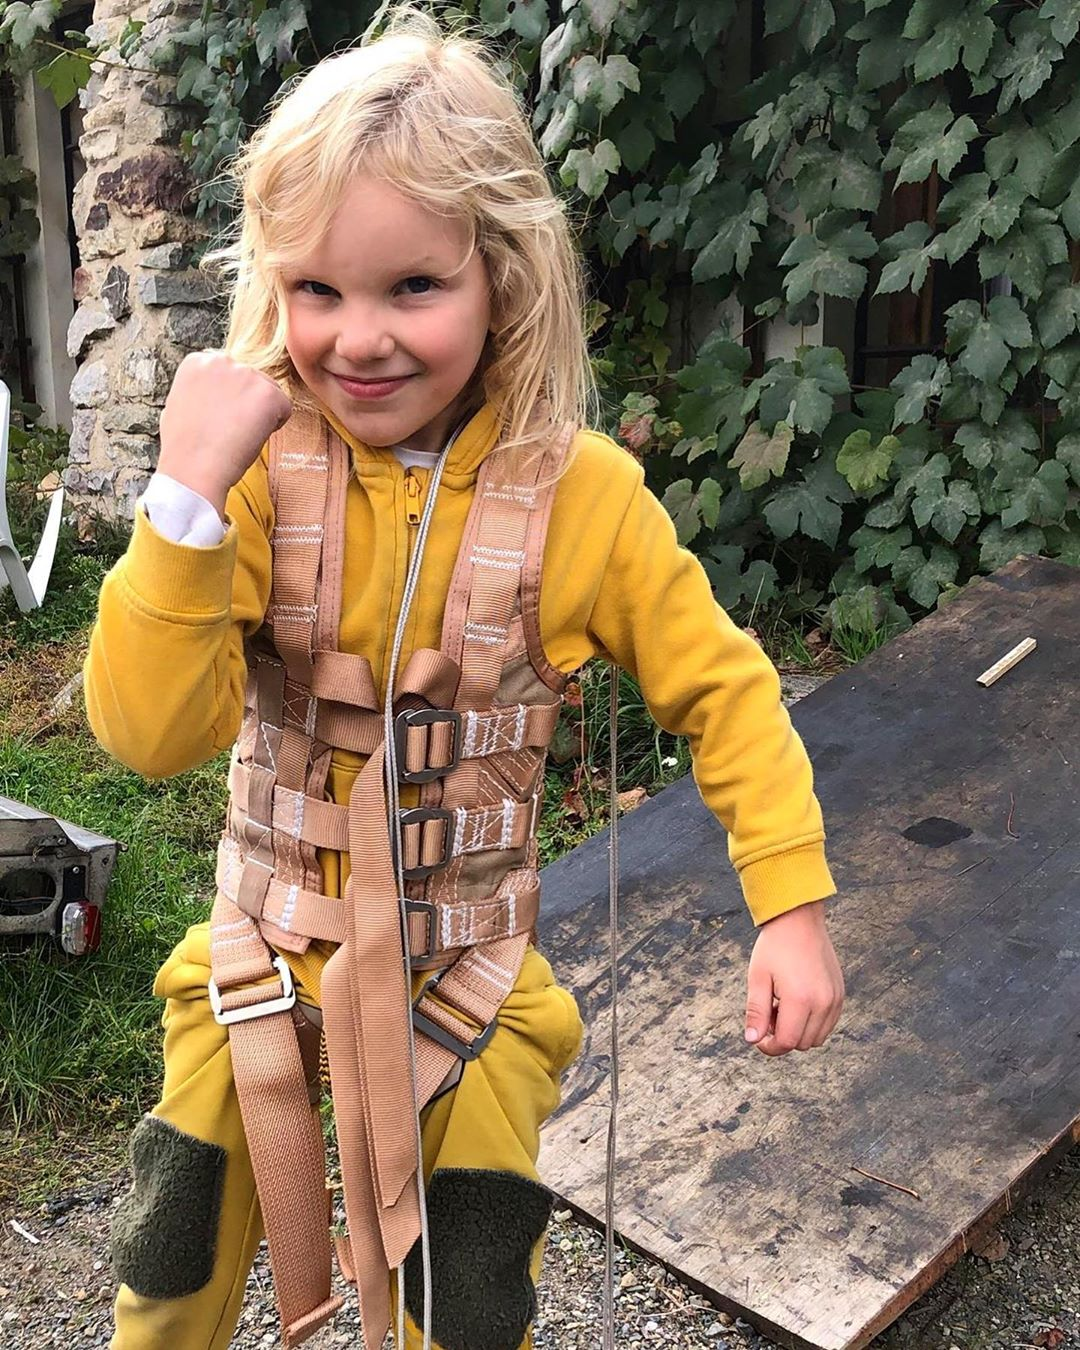 Stunt kids harness, vest for stunt rigging, flying, aerial perfomances, stuntmen